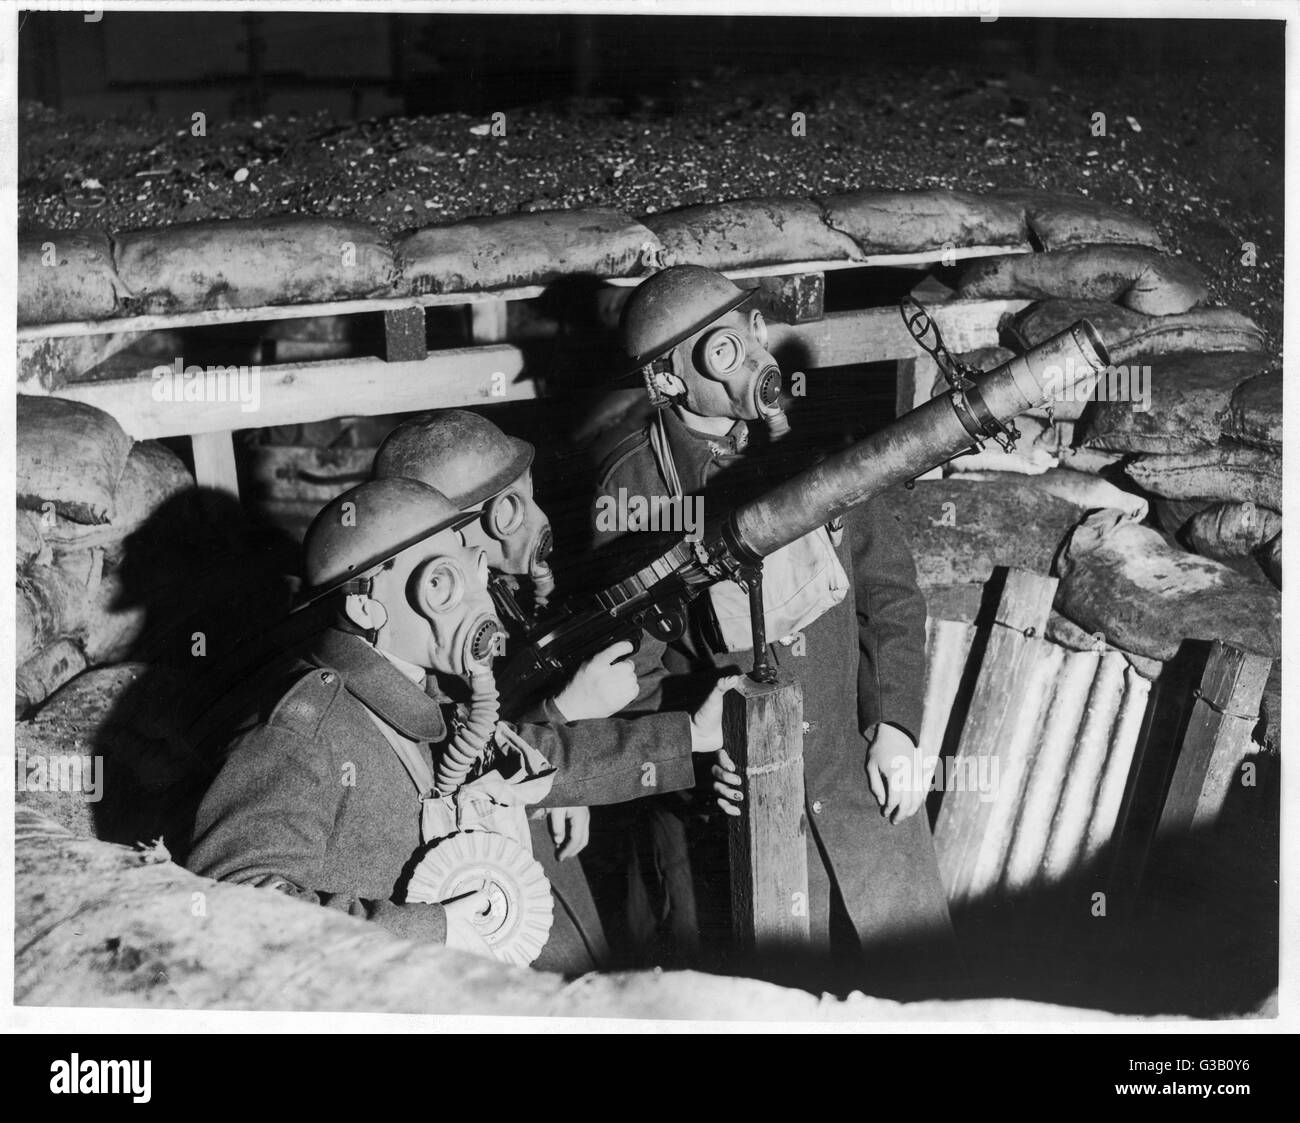 Three soldiers in a pit  wearing gas masks, with  an anti-aircraft Lewis gun.       Date: circa 1940 - Stock Image